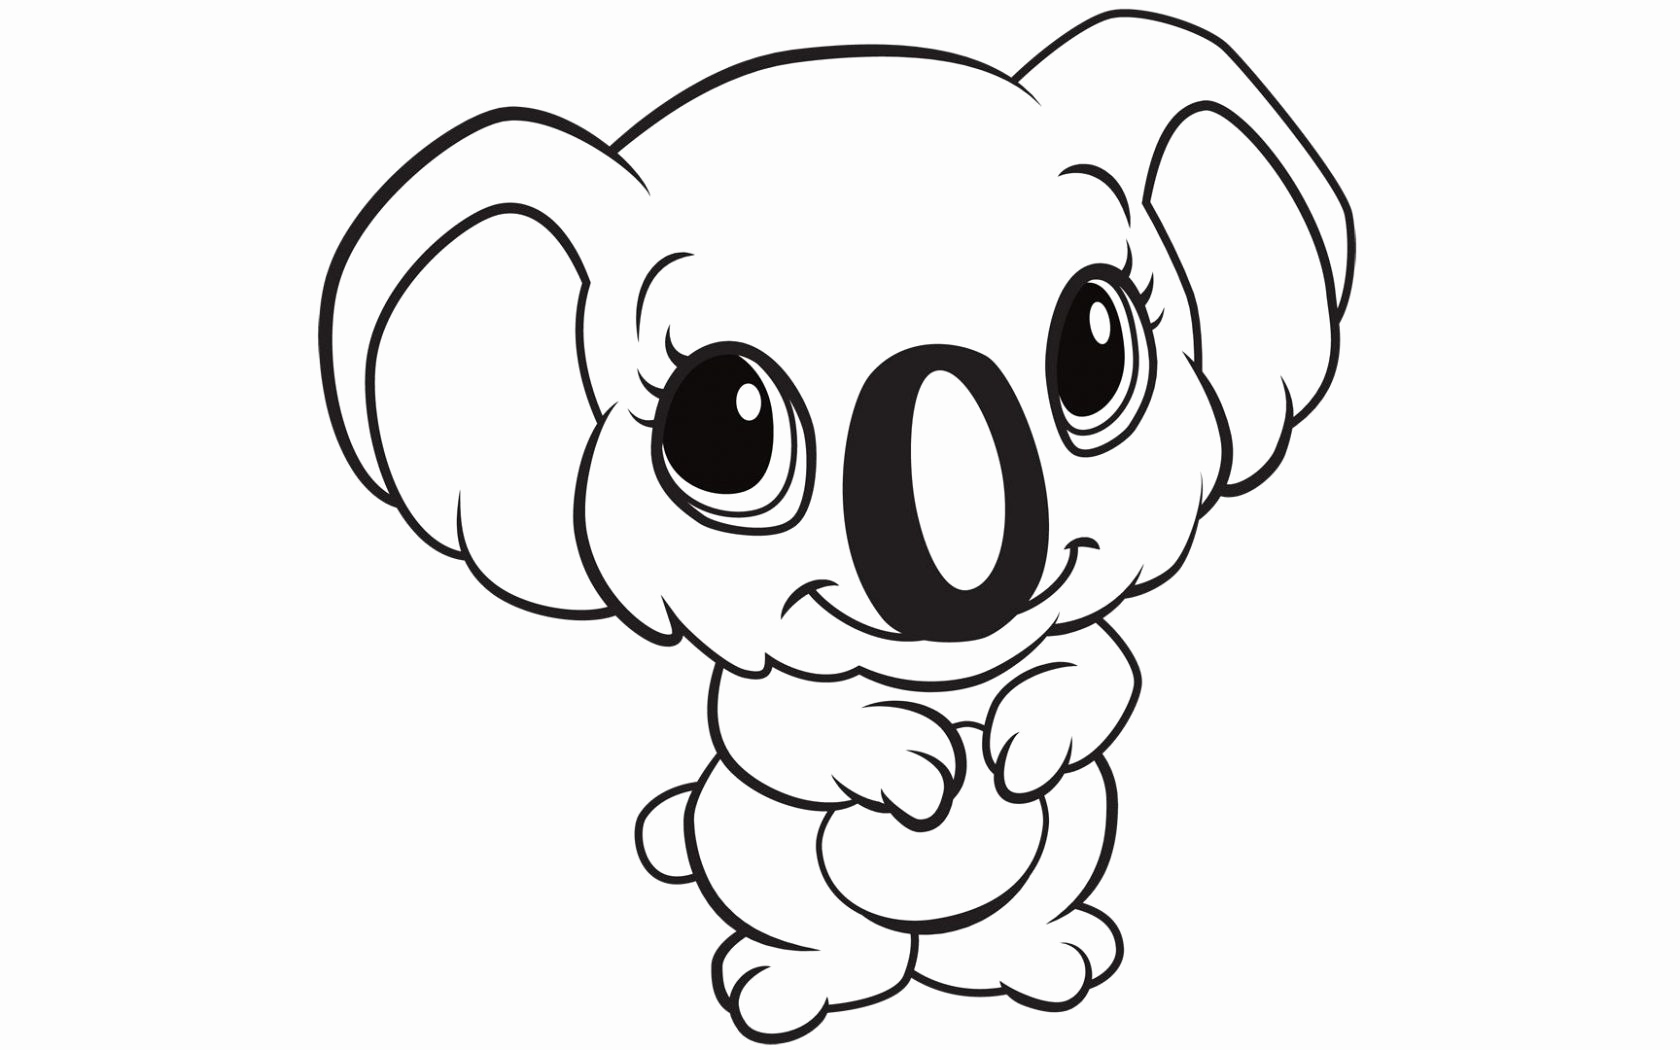 Animal Pictures to Color Awesome Animal Coloring Pages Best Coloring Pages for Kids